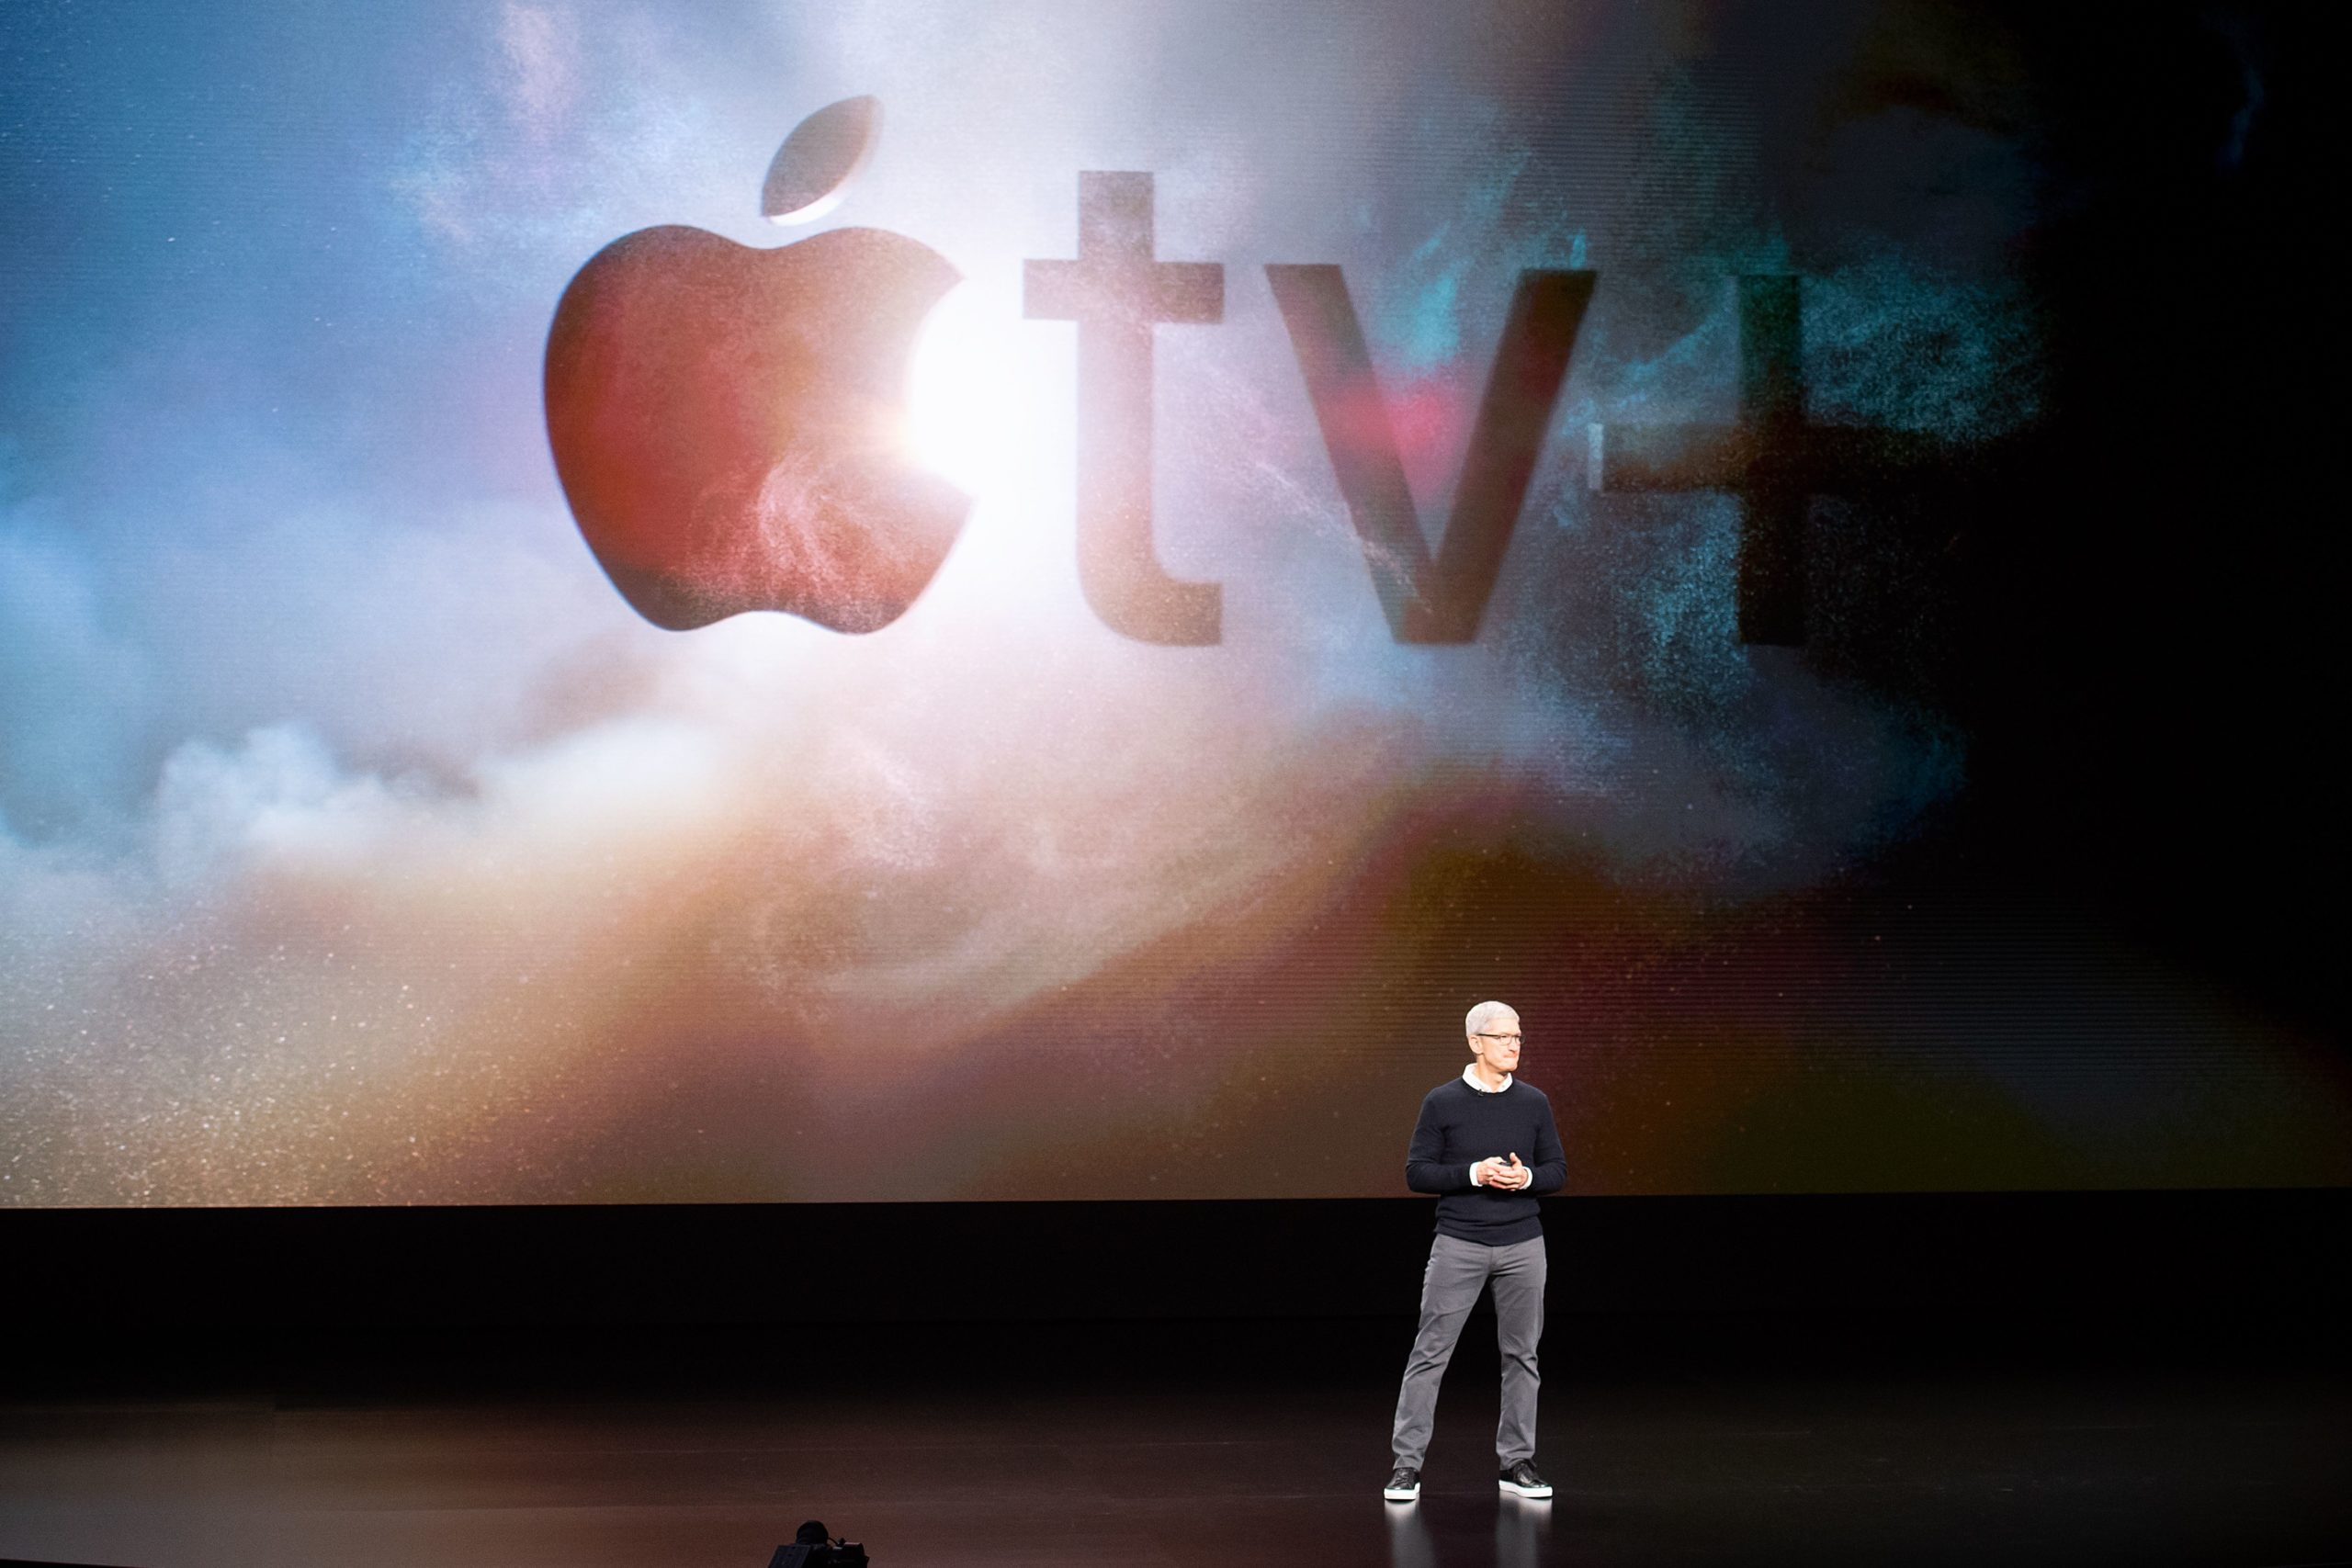 Apple CEO Tim Cook speaks during an event in 2019 in Cupertino, California. (Noah Berger/AFP via Getty Images)